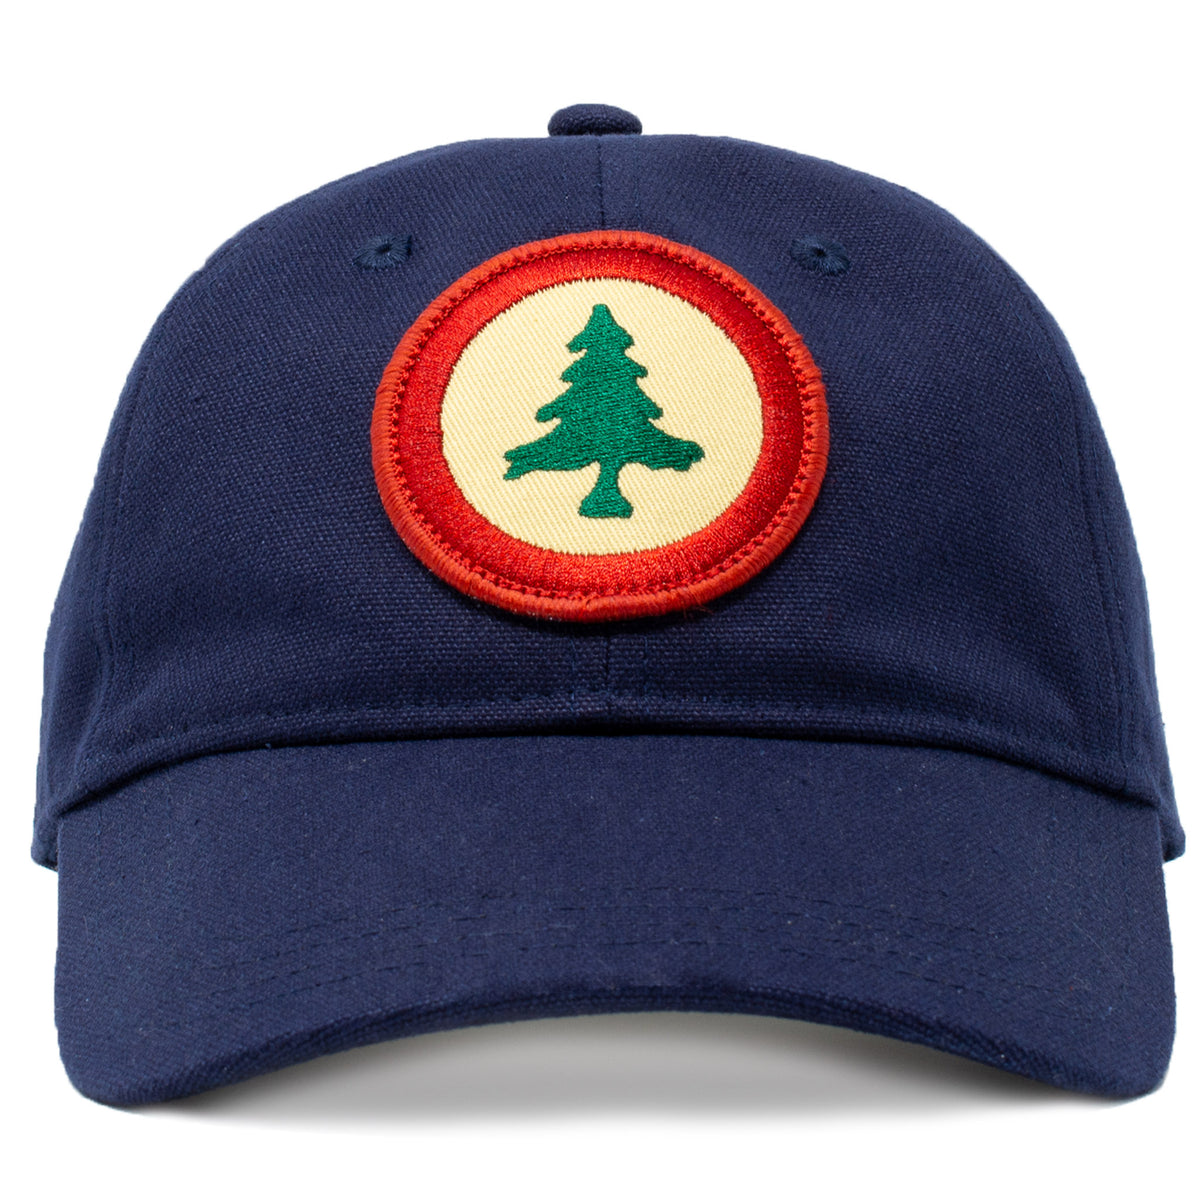 New England Pine Tree Flag Hat